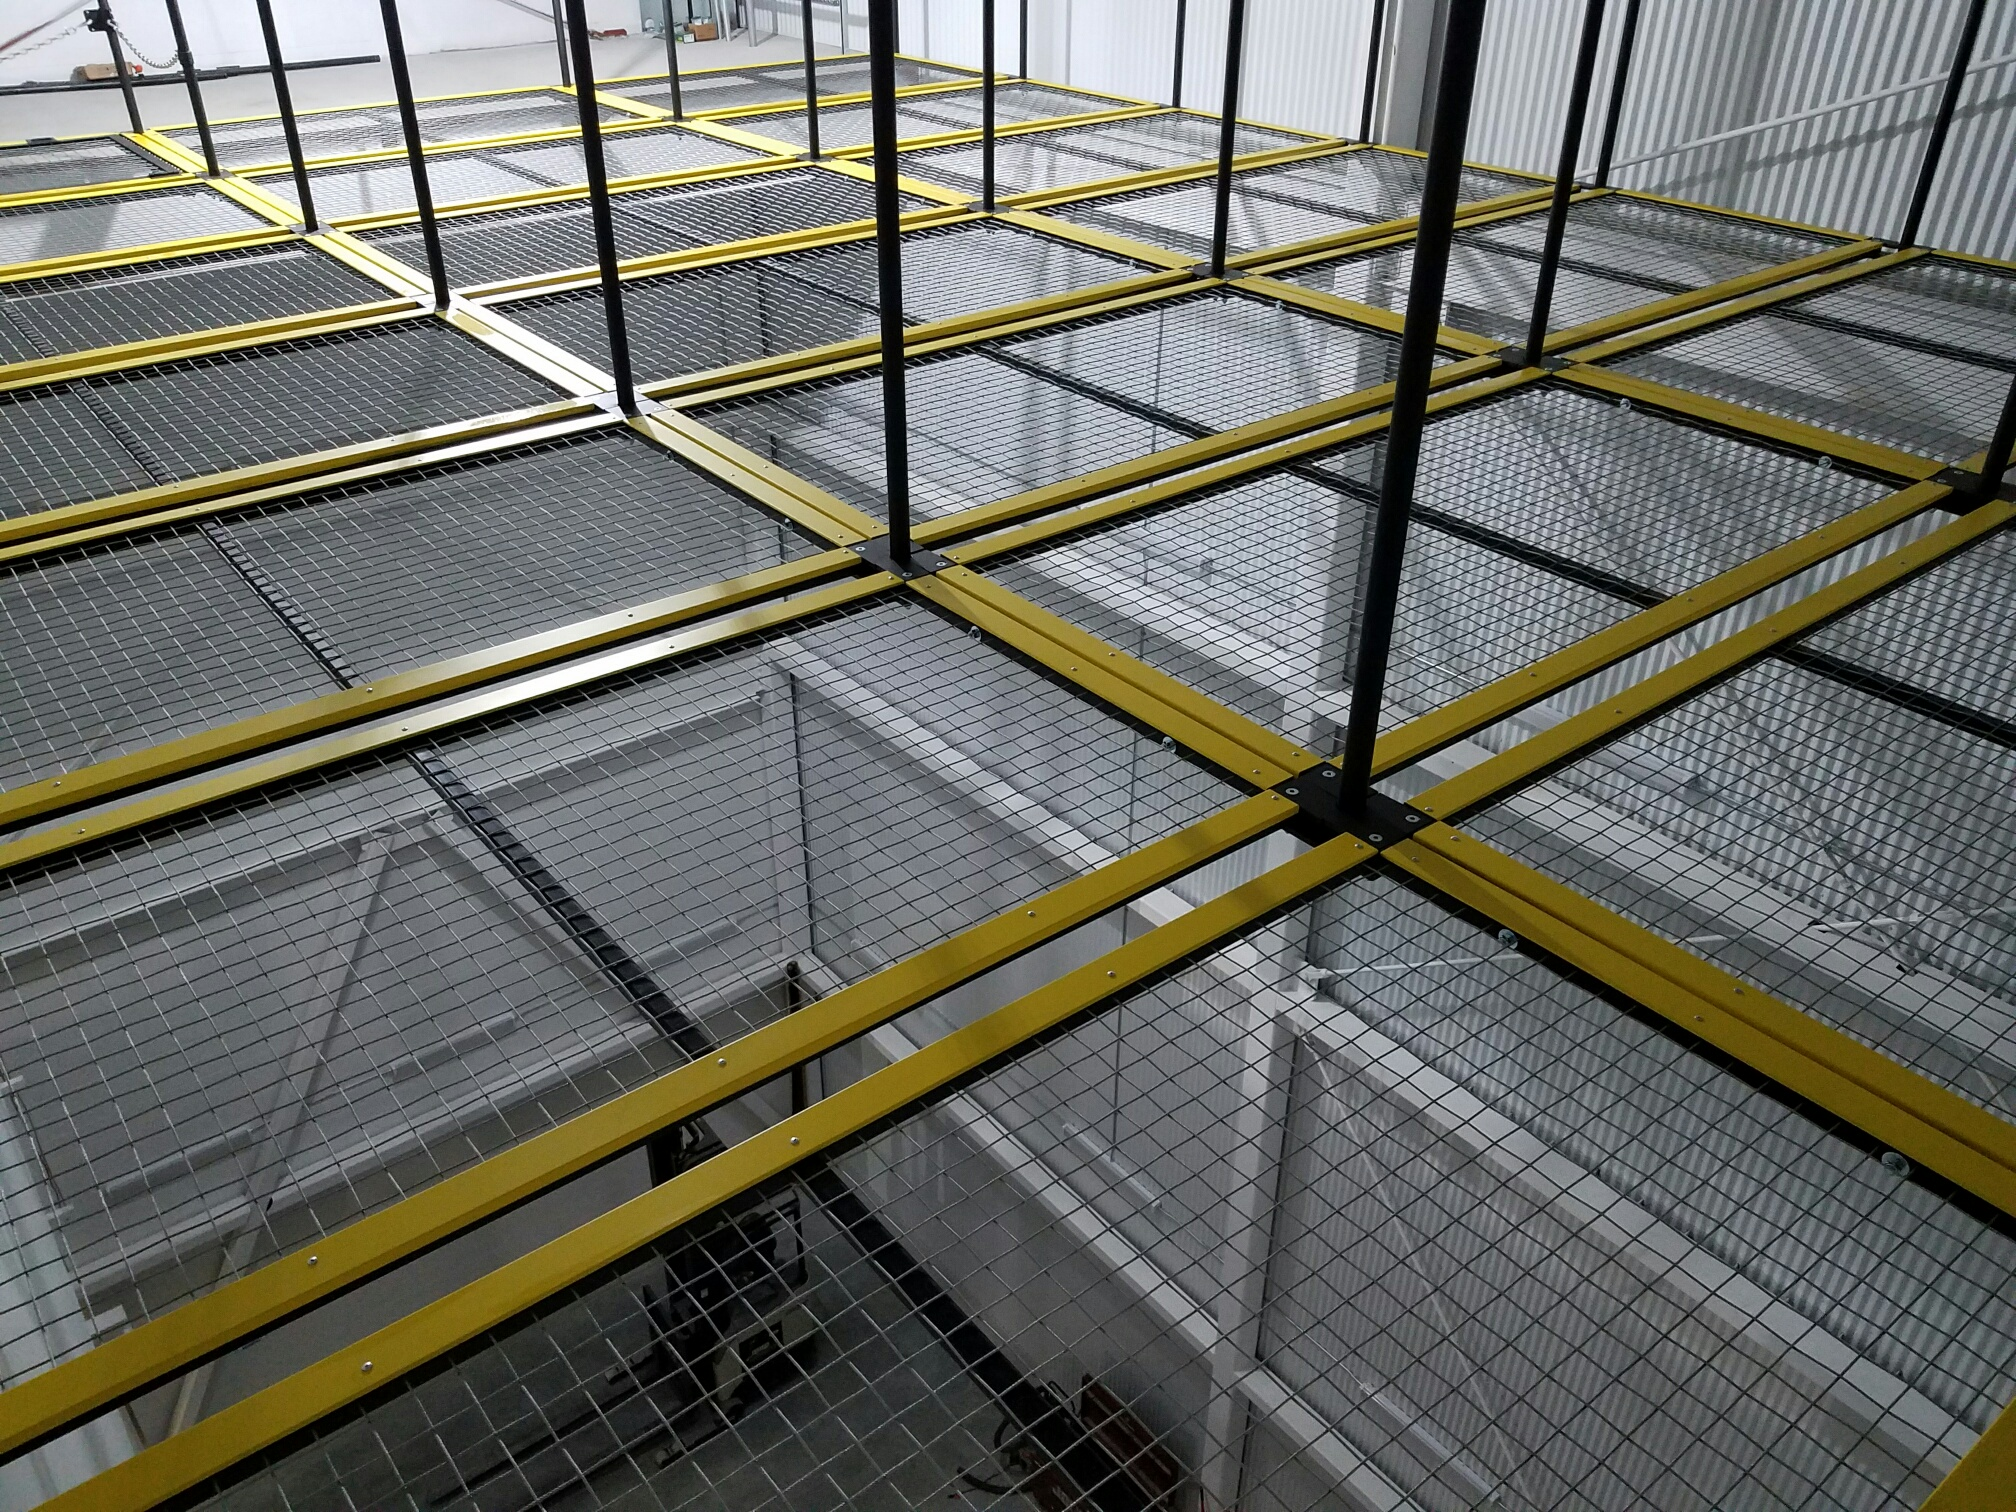 Skydeck Tension Wire Grid Is The Most Efficient System On Metal Buildings Wired These Terms Are Not Mutually Exclusive Providing Safe Access To Overhead Equipment Market Today